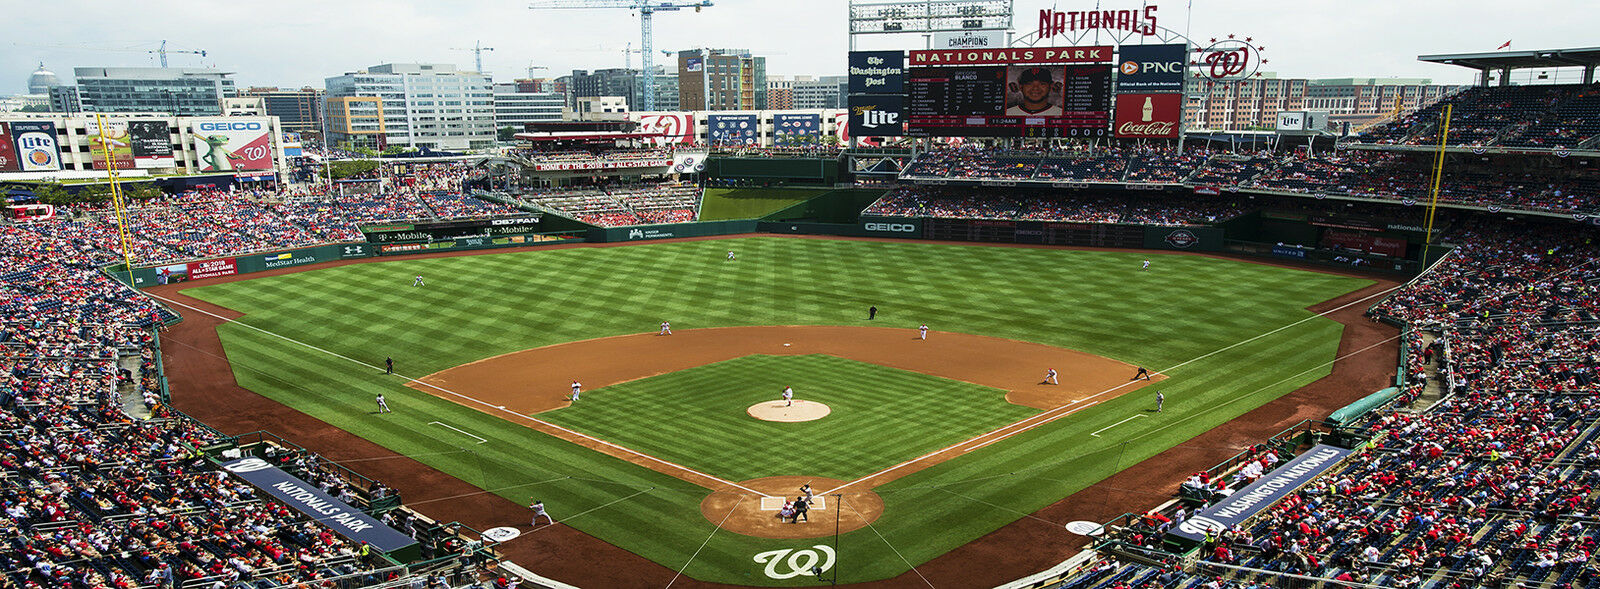 Pittsburgh Pirates at Washington Nationals